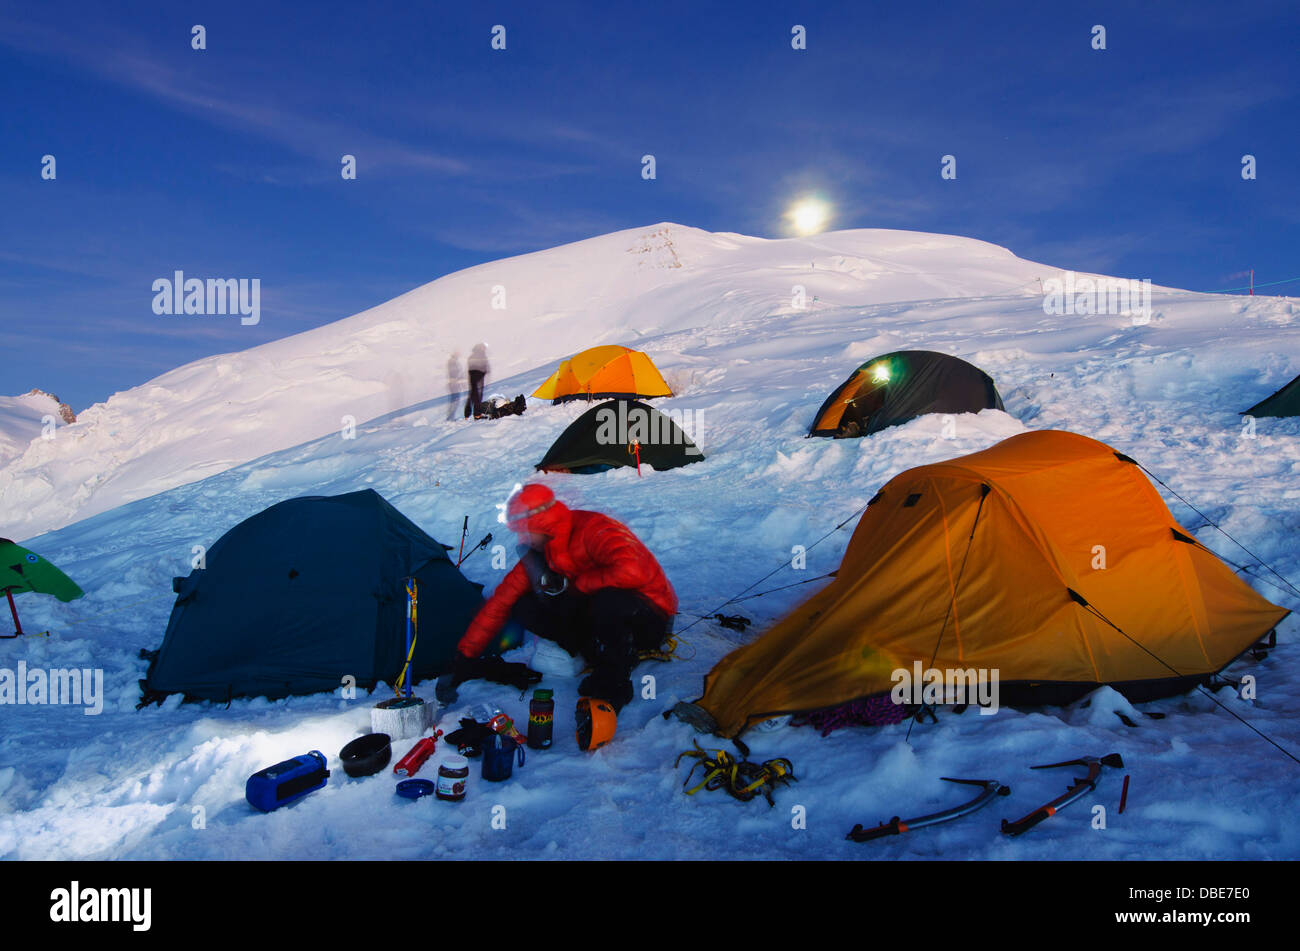 full moon, tents on Mt Blanc, French Alps, Haute-Savoie, France, Europe - Stock Image